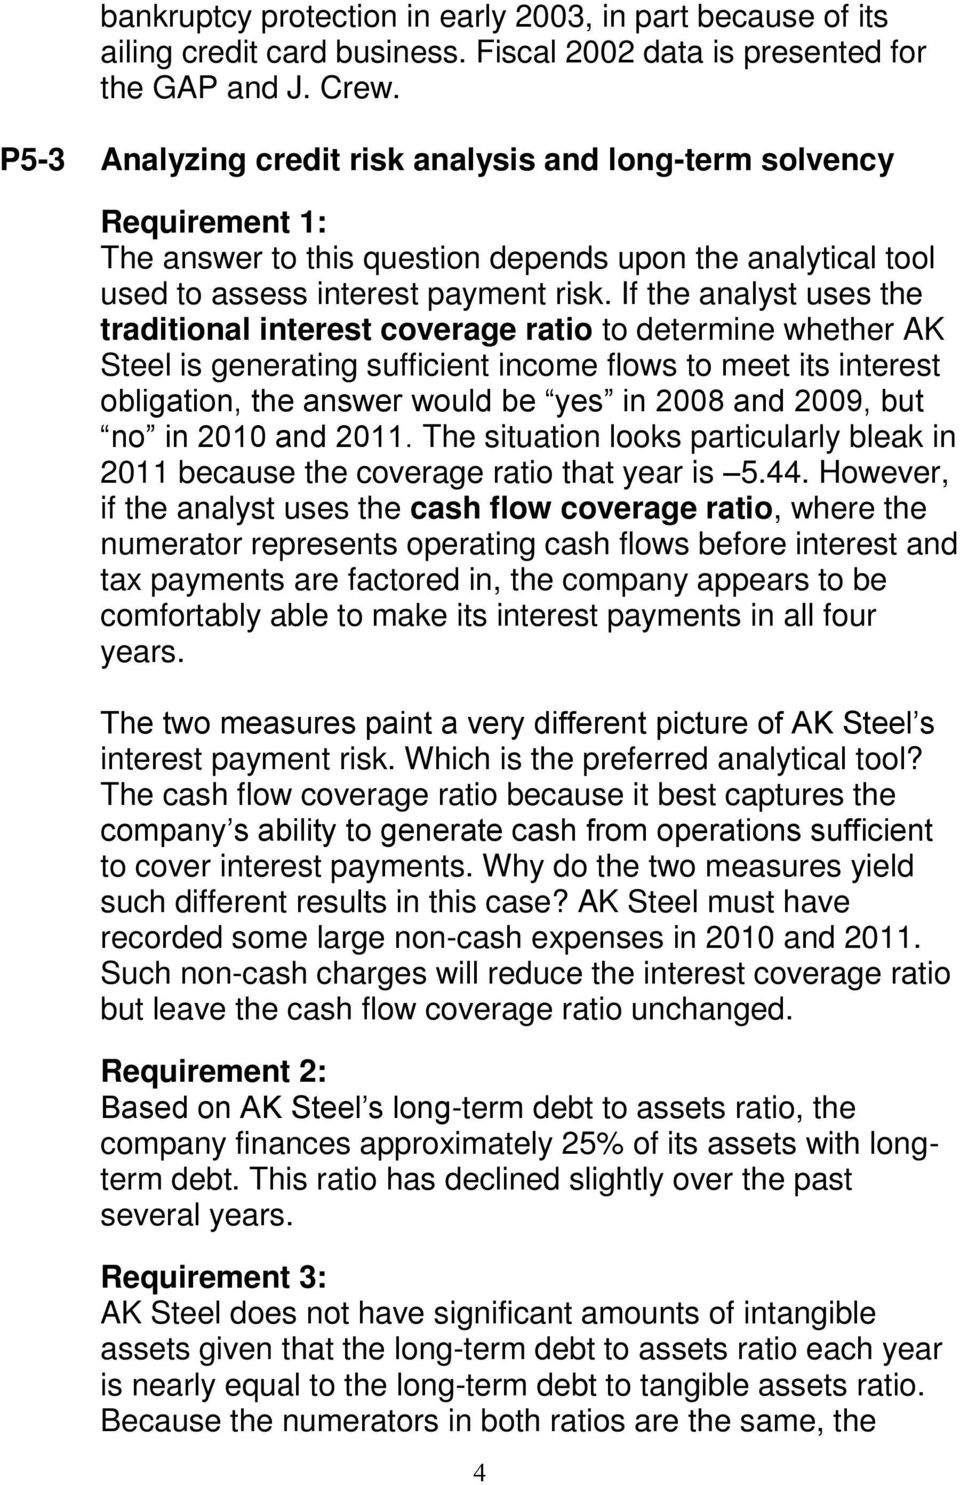 If the analyst uses the traditional interest coverage ratio to determine whether AK Steel is generating sufficient income flows to meet its interest obligation, the answer would be yes in 2008 and